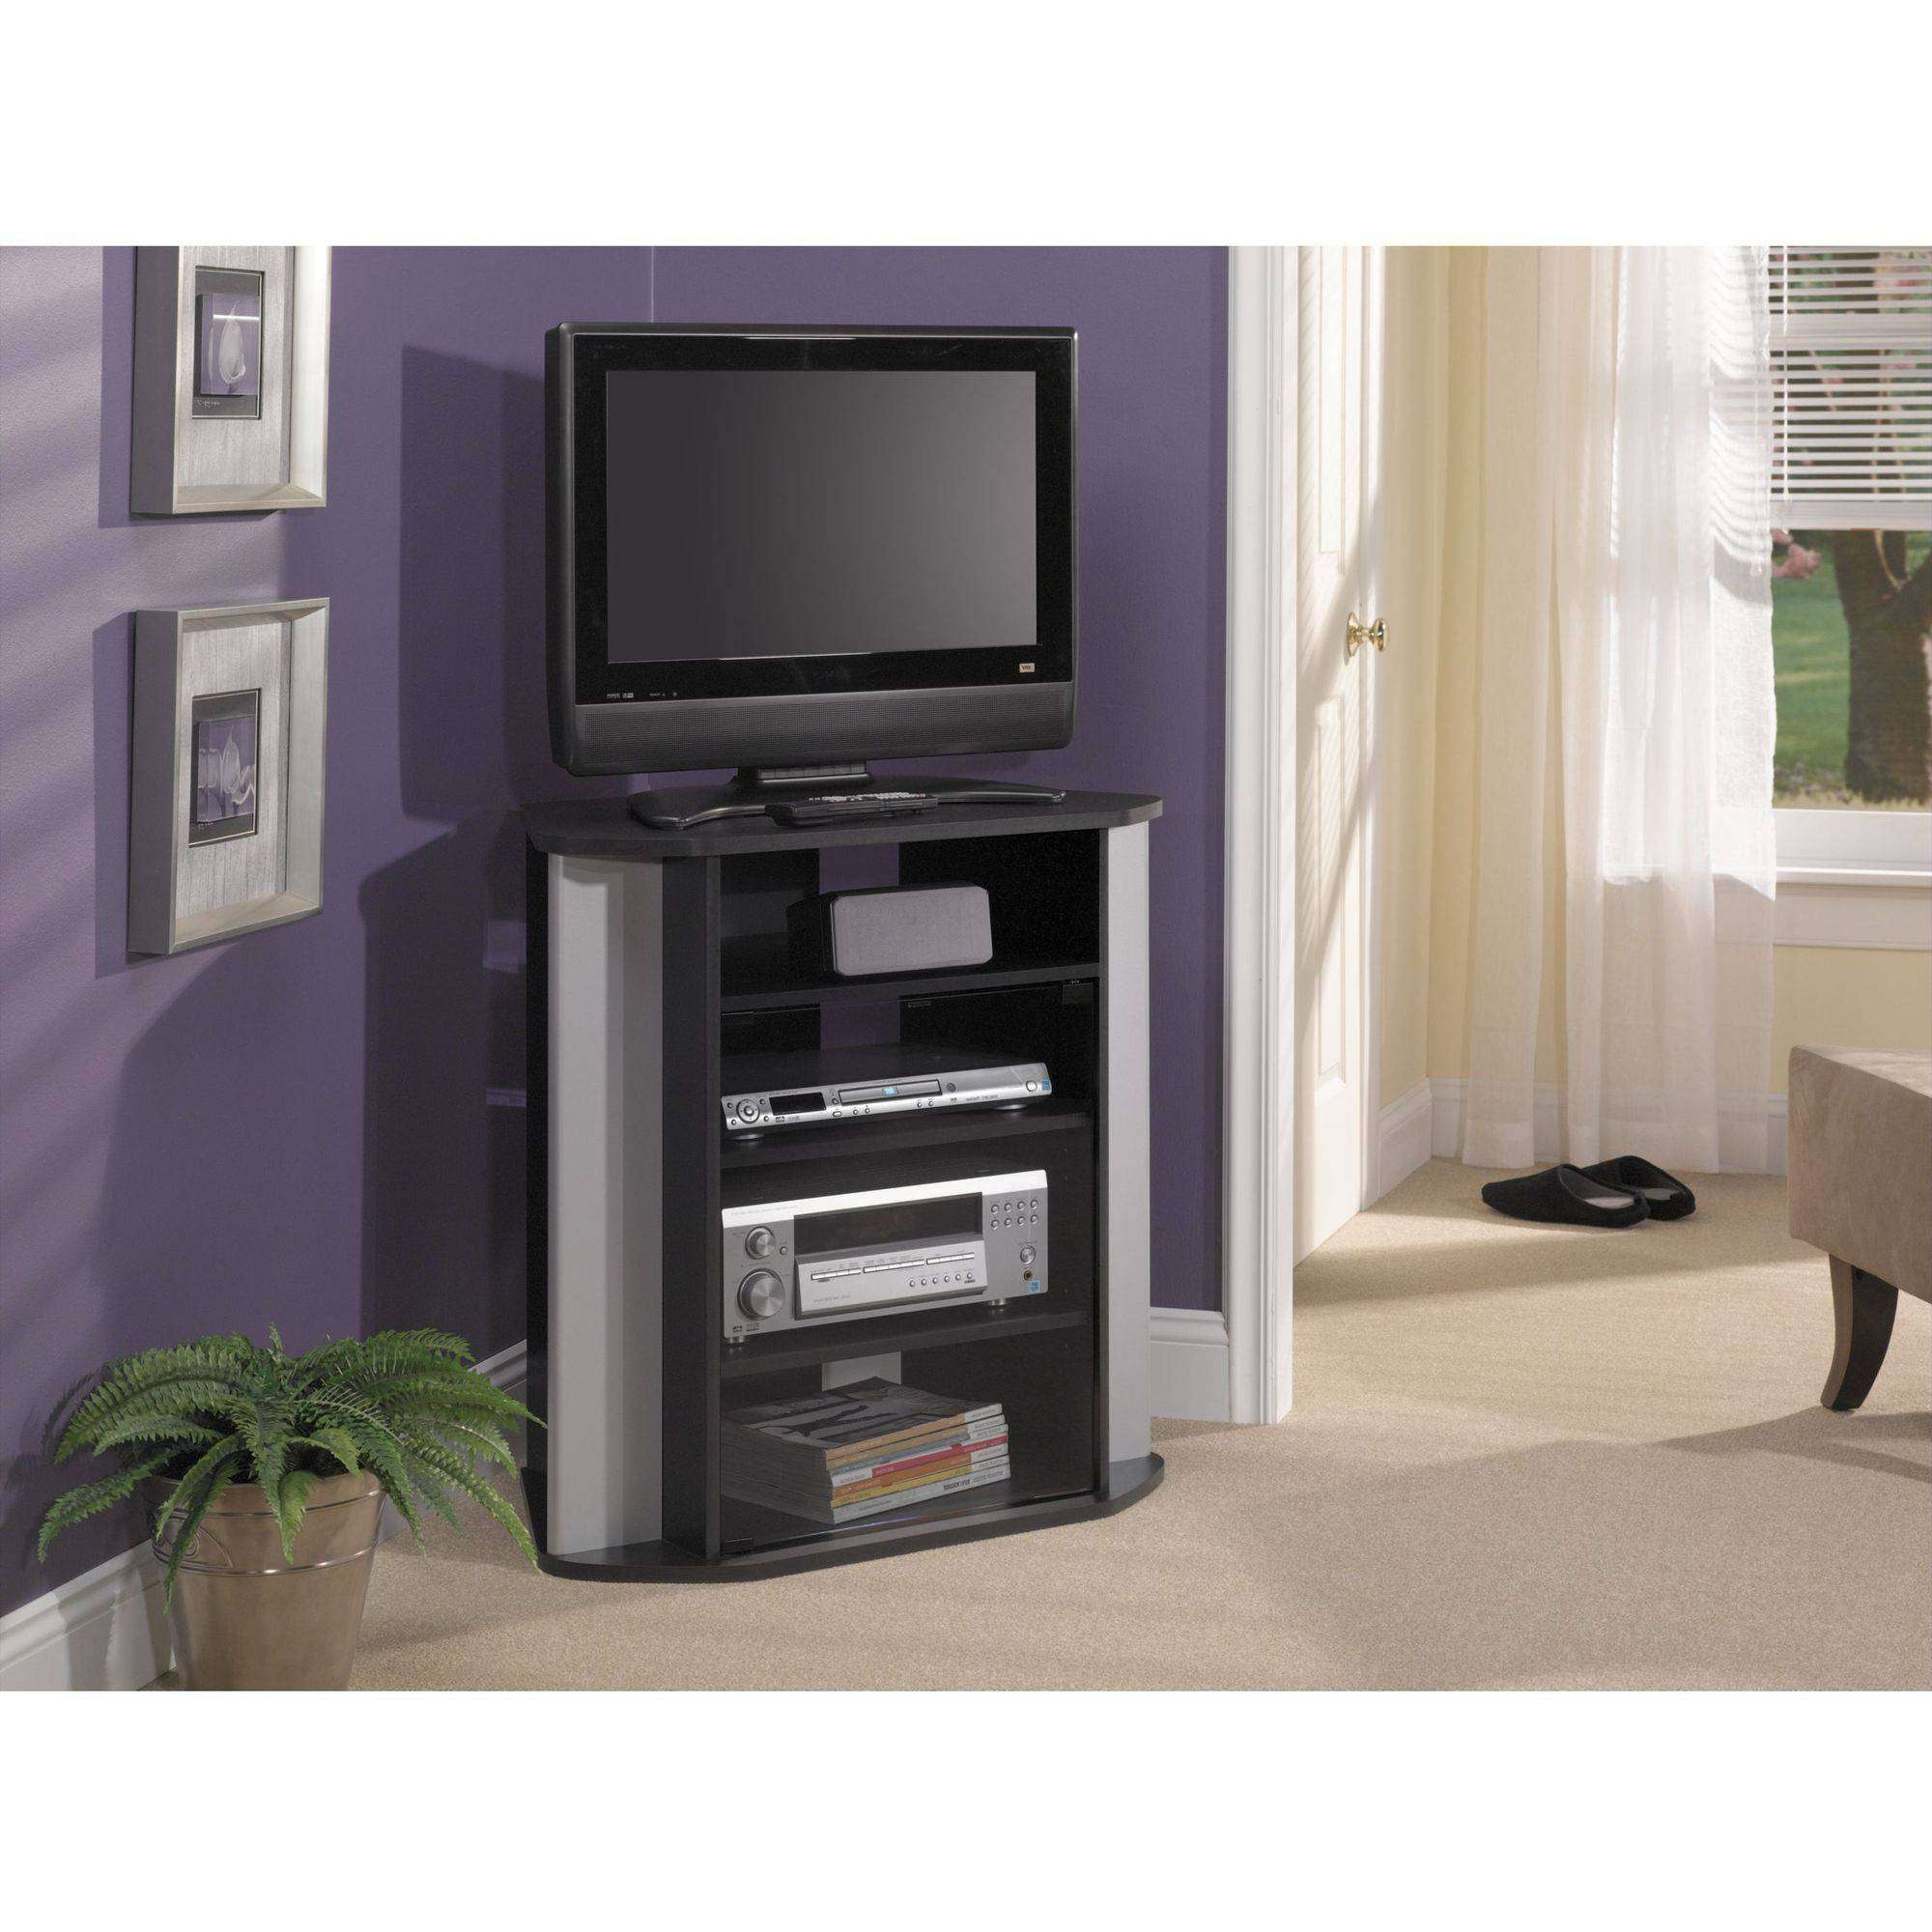 Tall Skinny Tv Stand With Regard To Tall Skinny Tv Stands (View 6 of 15)